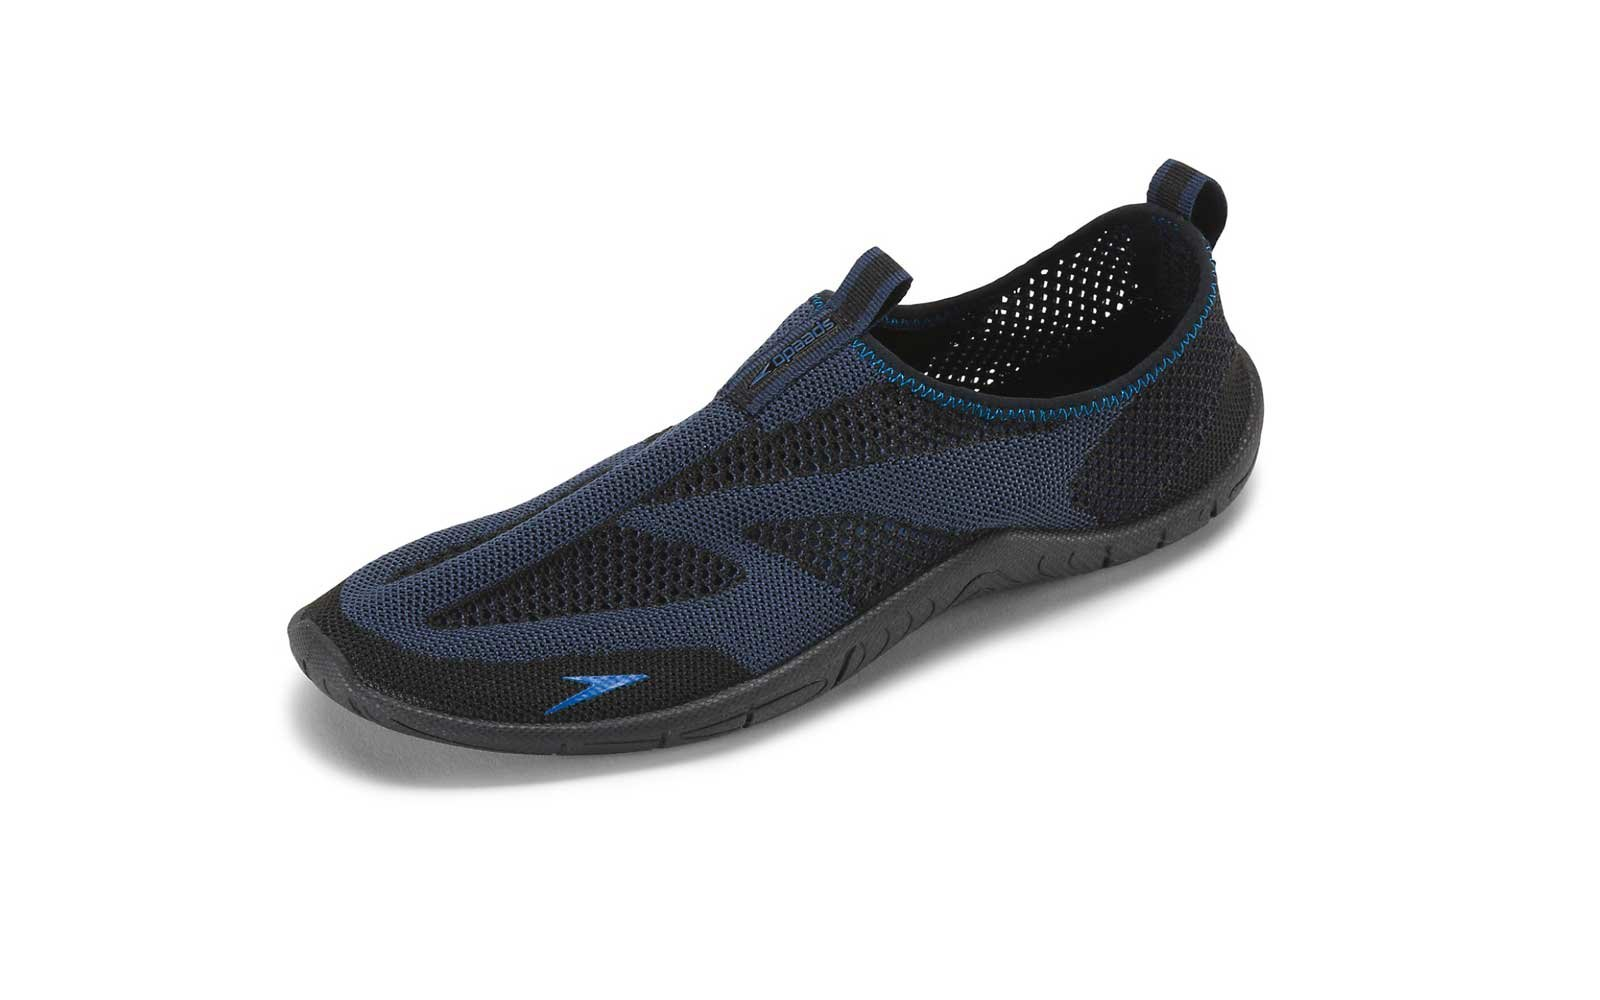 a808134dcfb The Best Men s Water Shoes for 2019